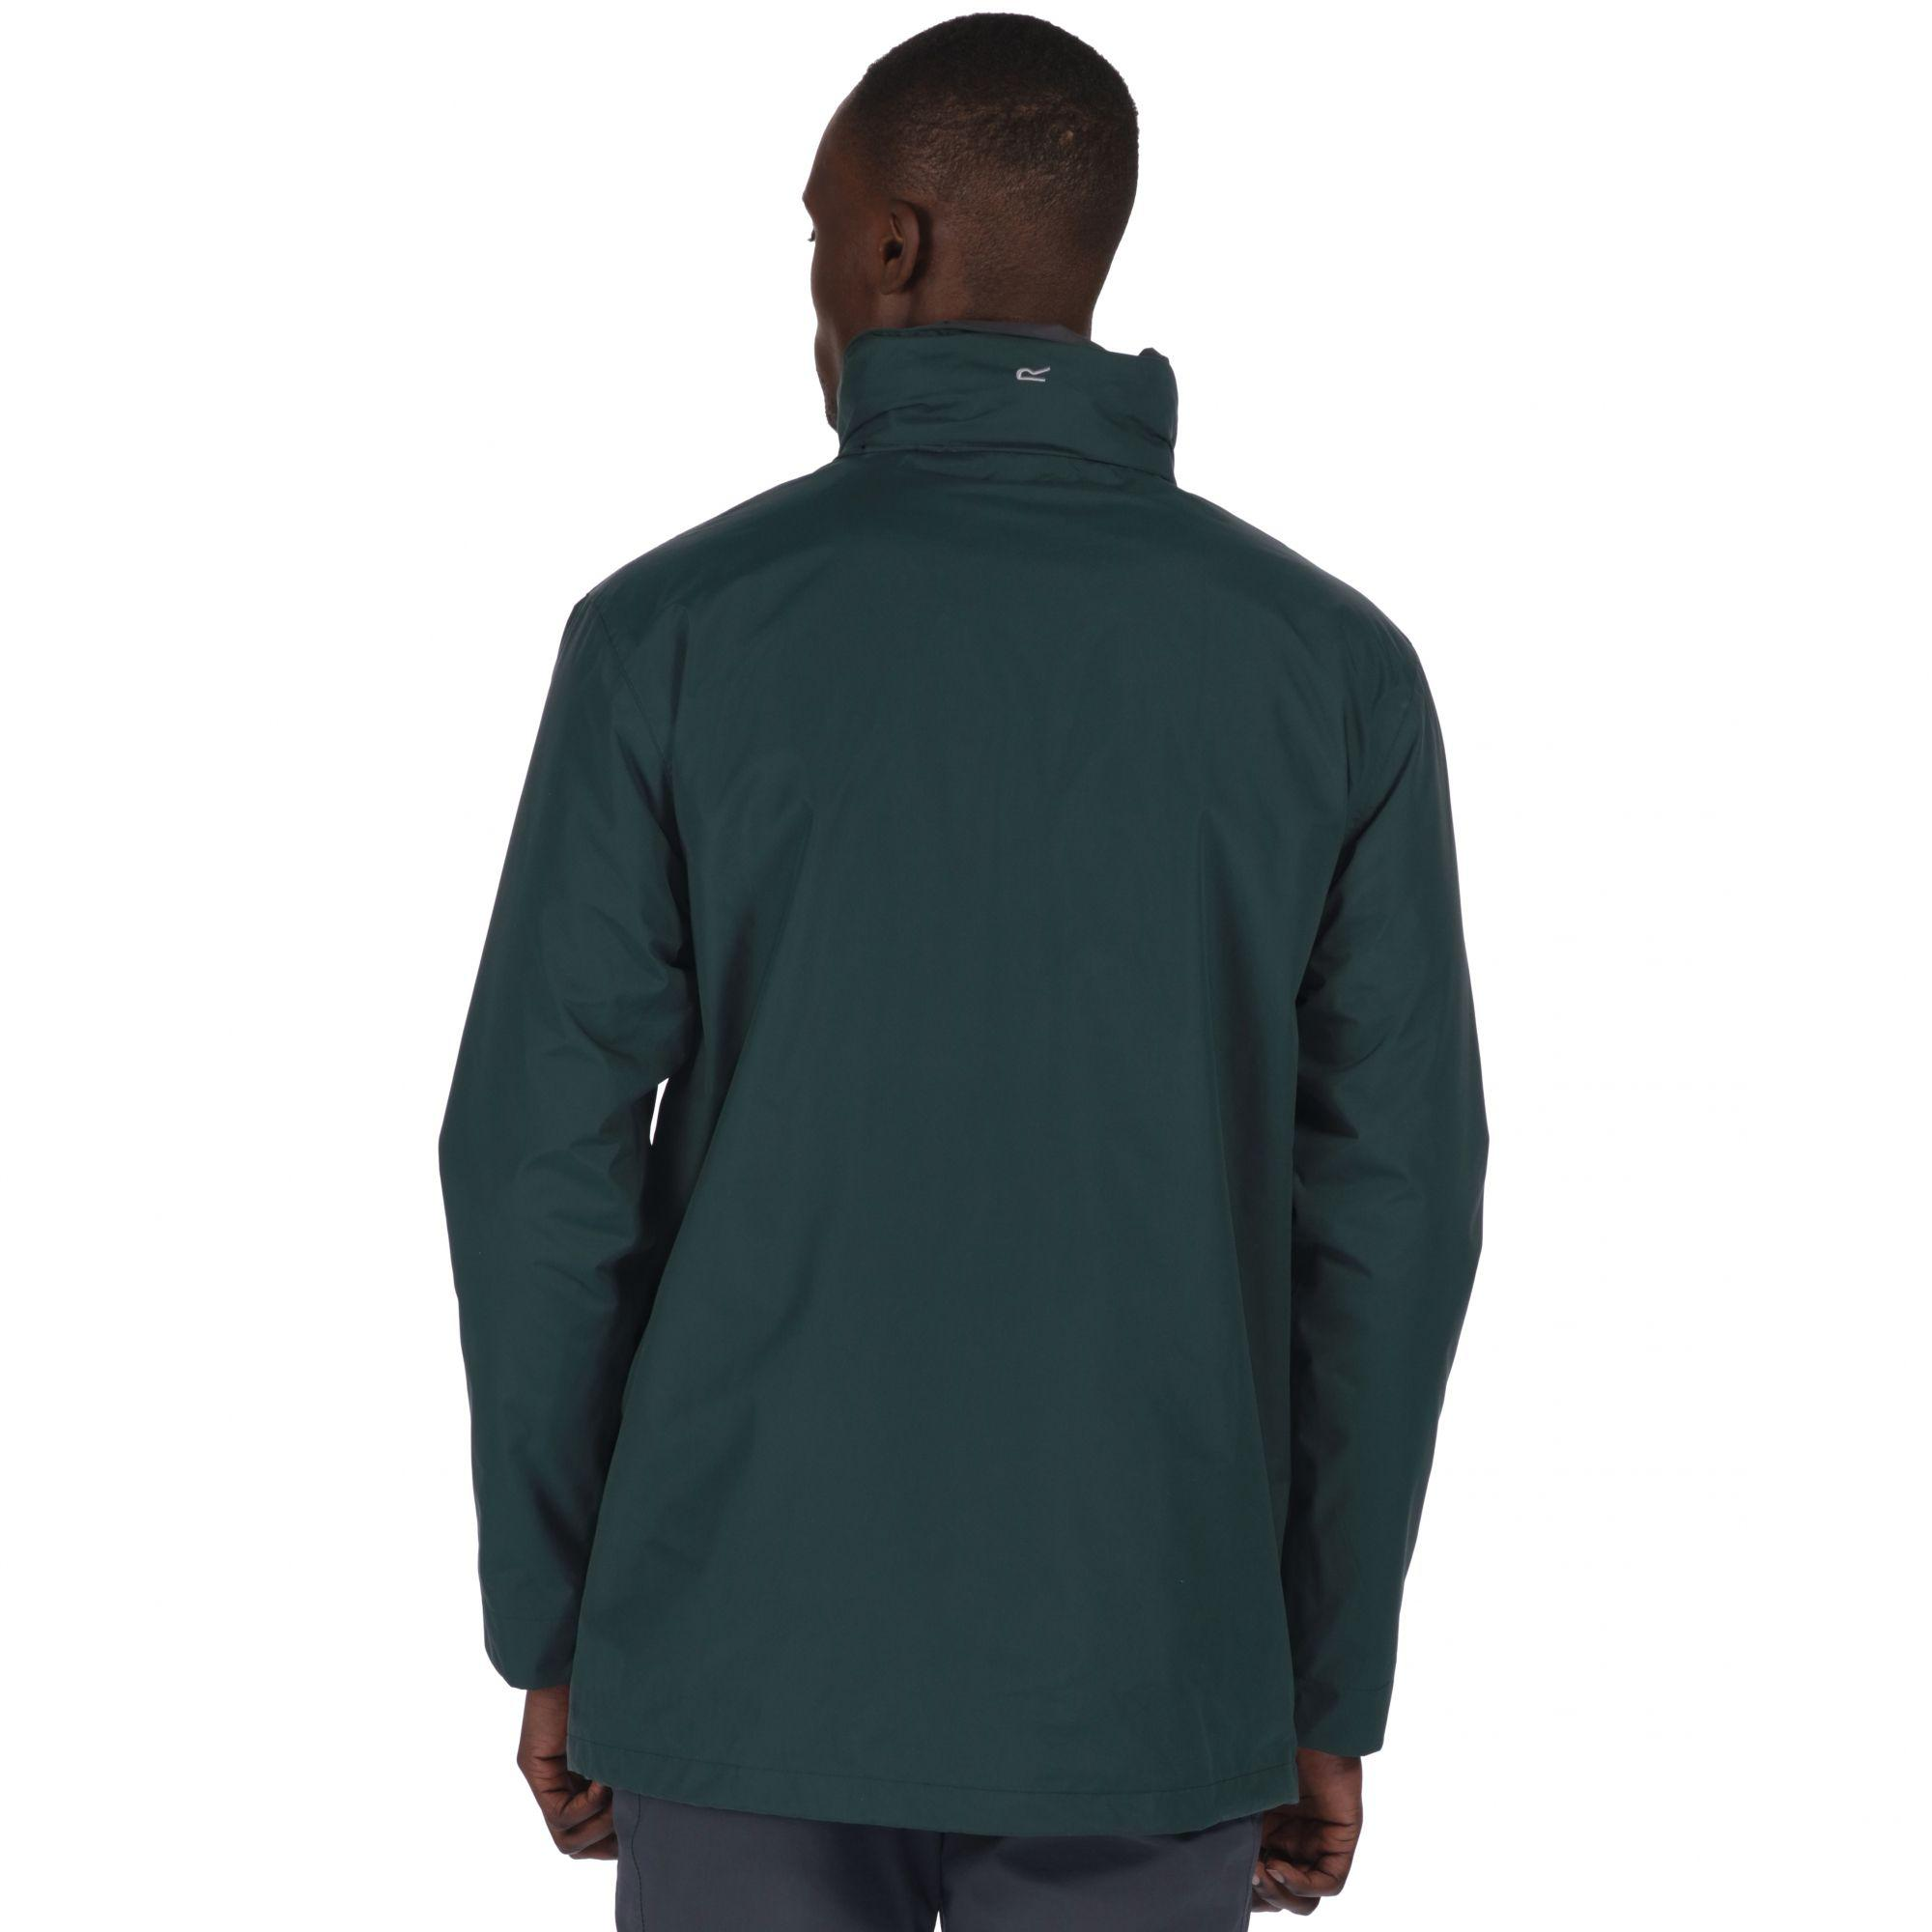 Regatta Fleece Green 'telmar' 3-in-1 Jacket for Men